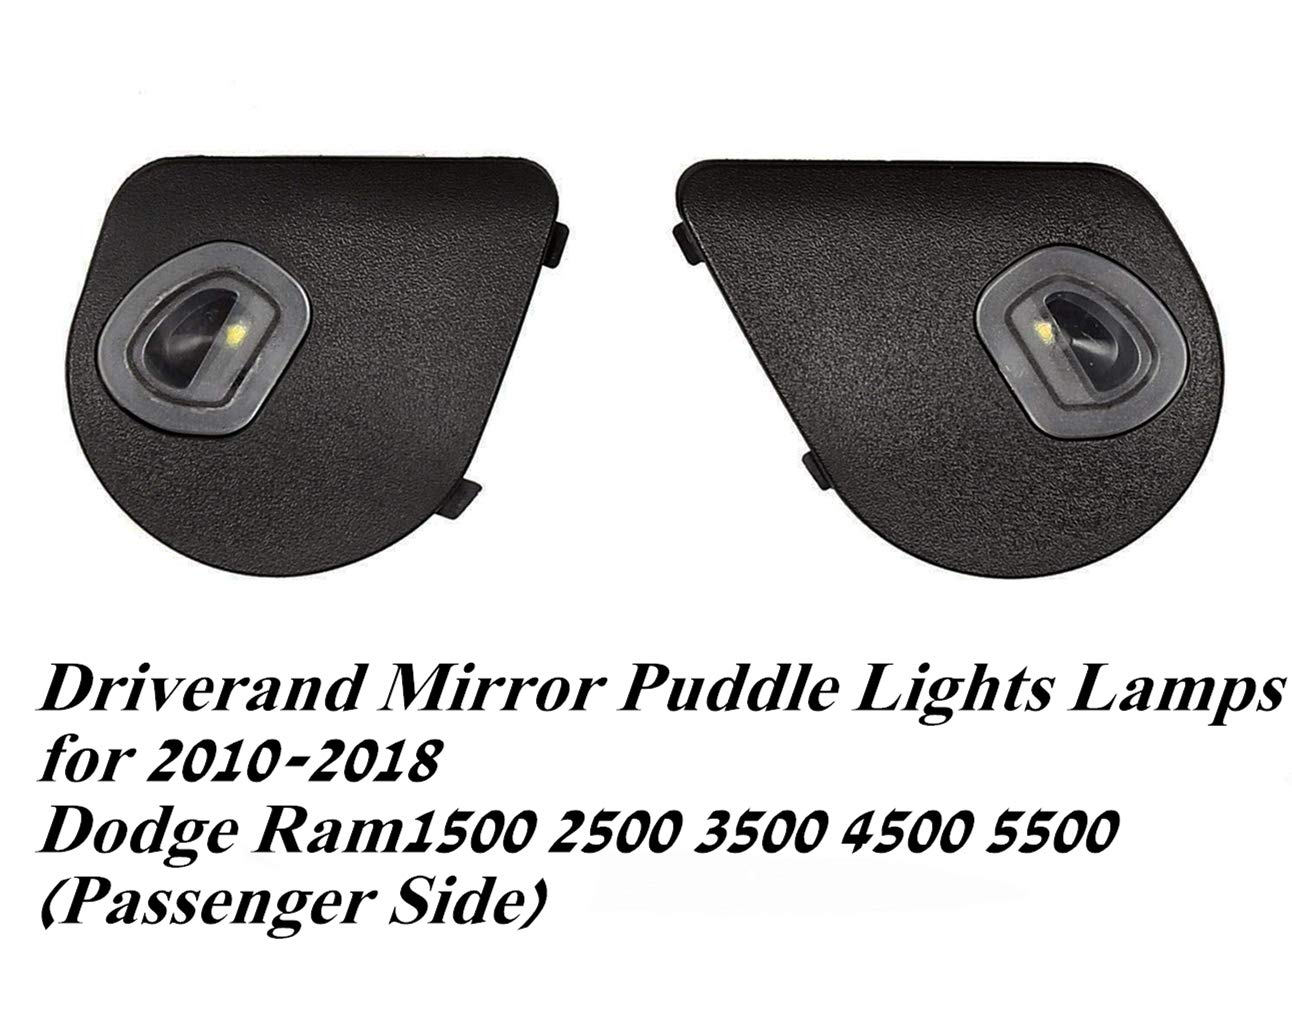 AUFER Driverand Mirror Puddle Lights Lamps for 2010-2018 Dodge Ram1500 2500 3500 4500 5500 (Passenger Side)